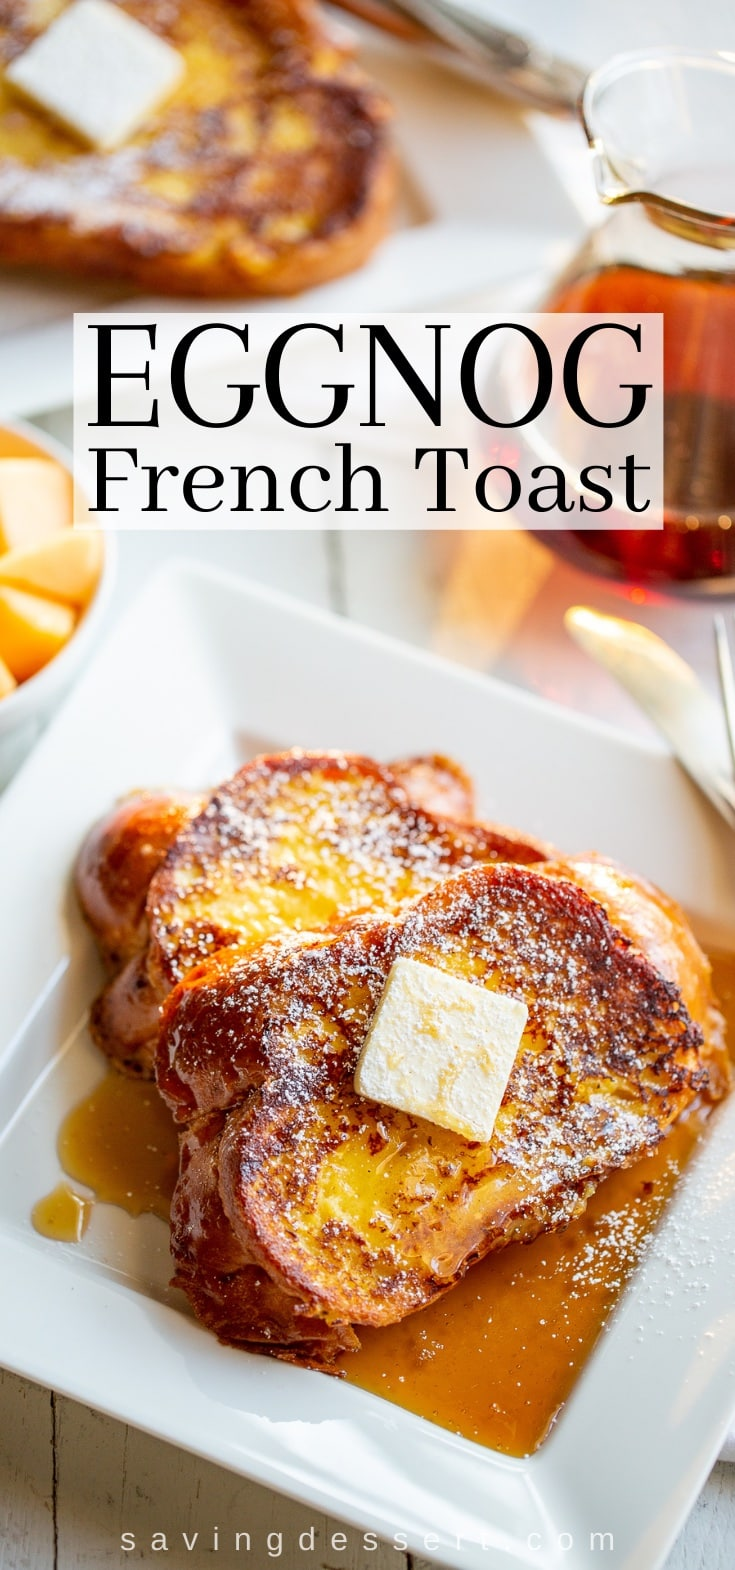 A plate of eggnog French toast with a pat of butter on top